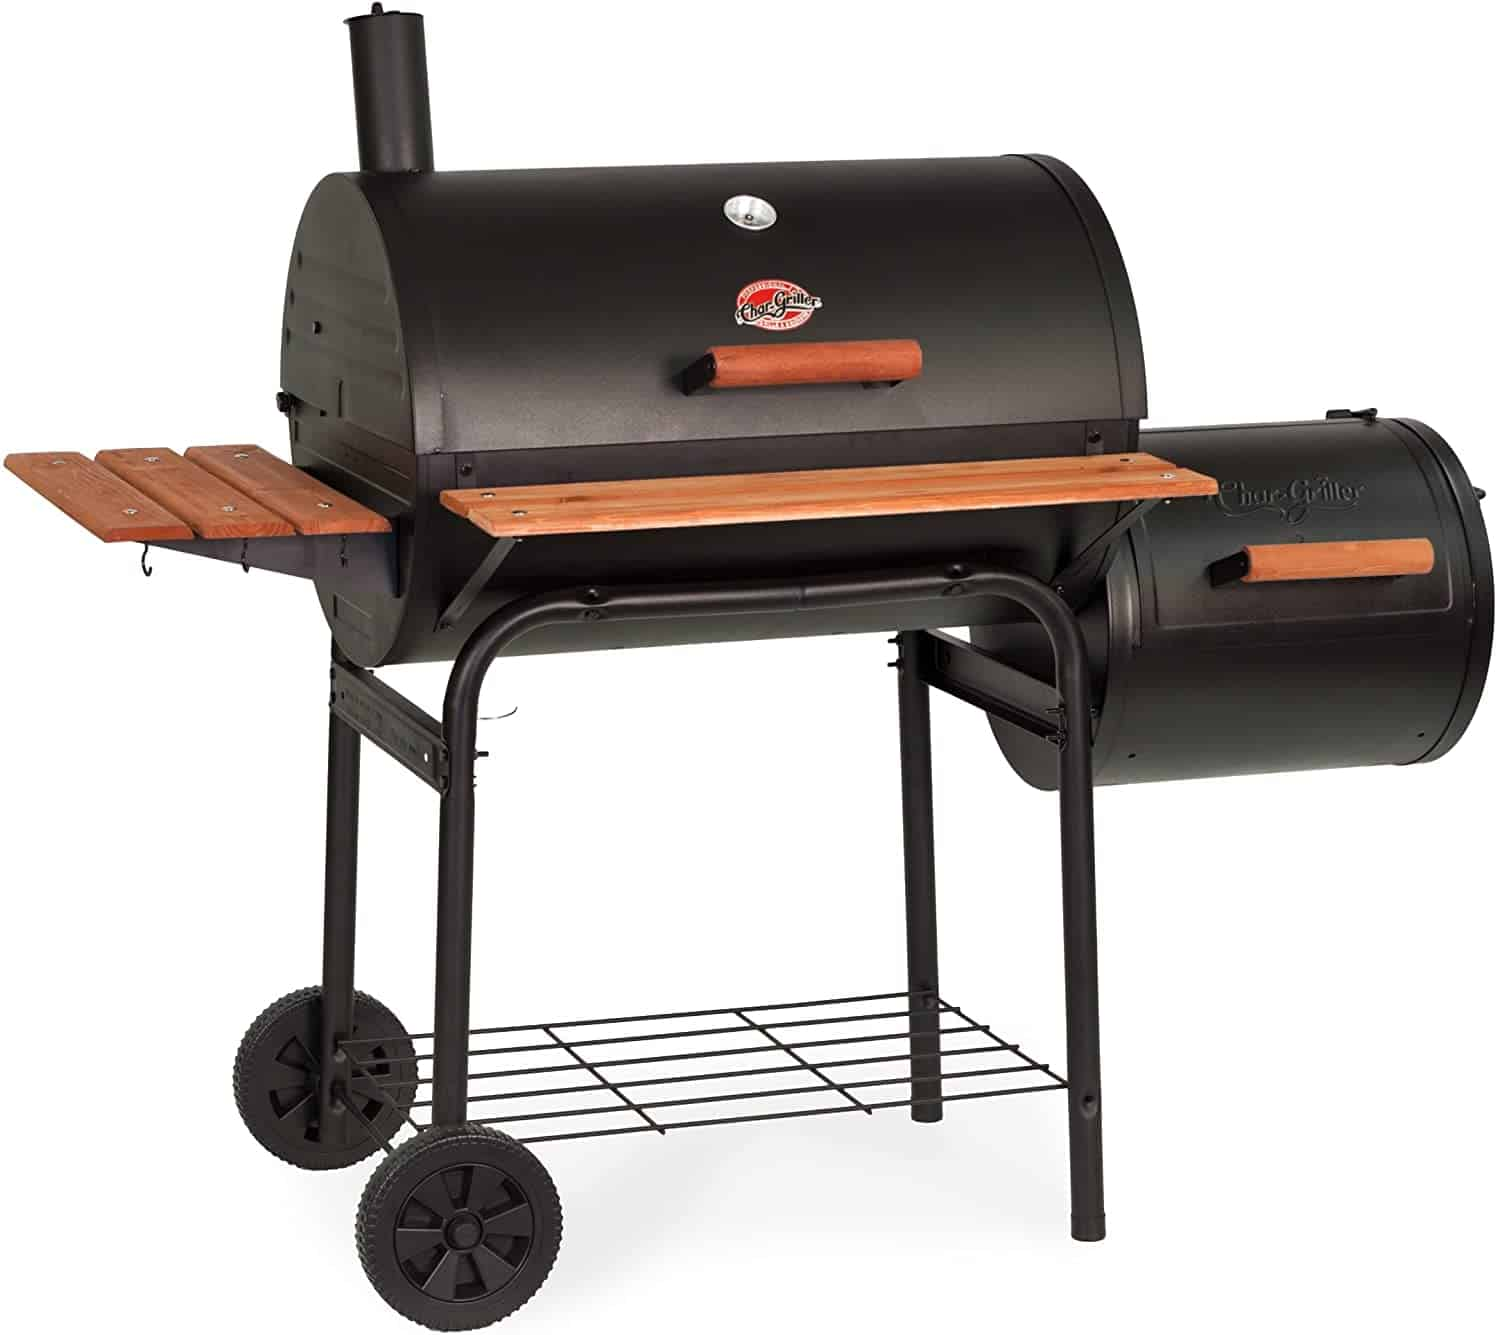 Best charcoal smoker for ribs- Char-Griller E1224 Smokin Pro